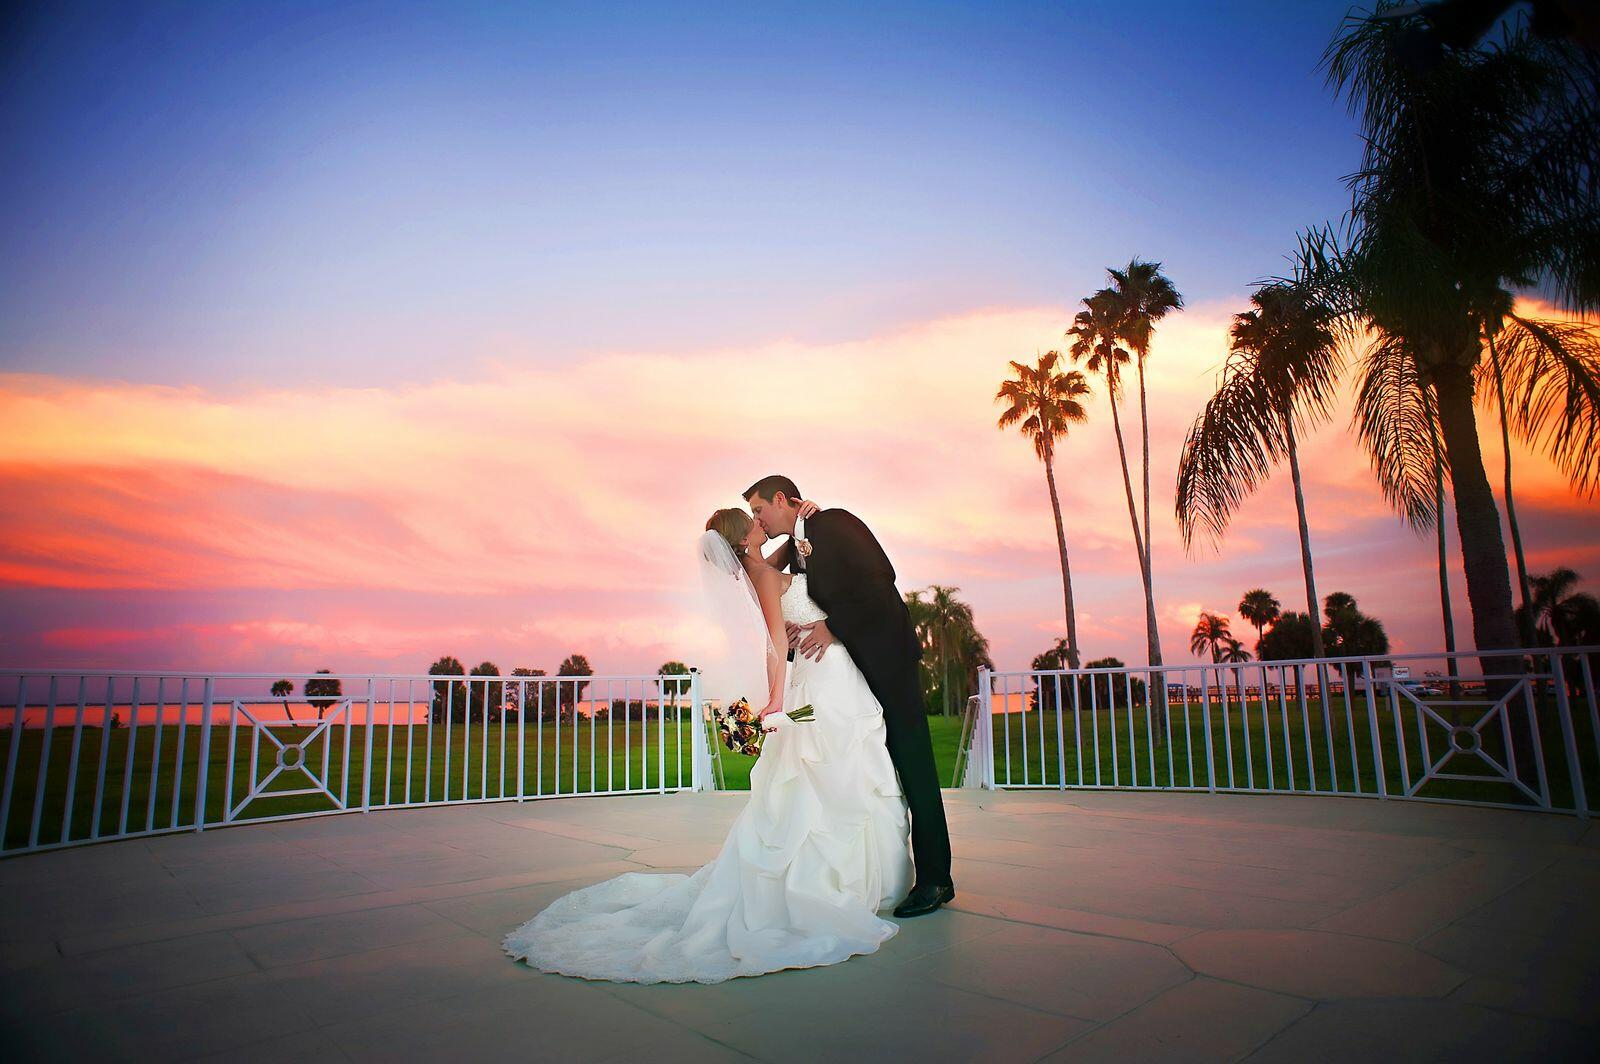 Newlyweds kissing under sunset Tampa Bay.